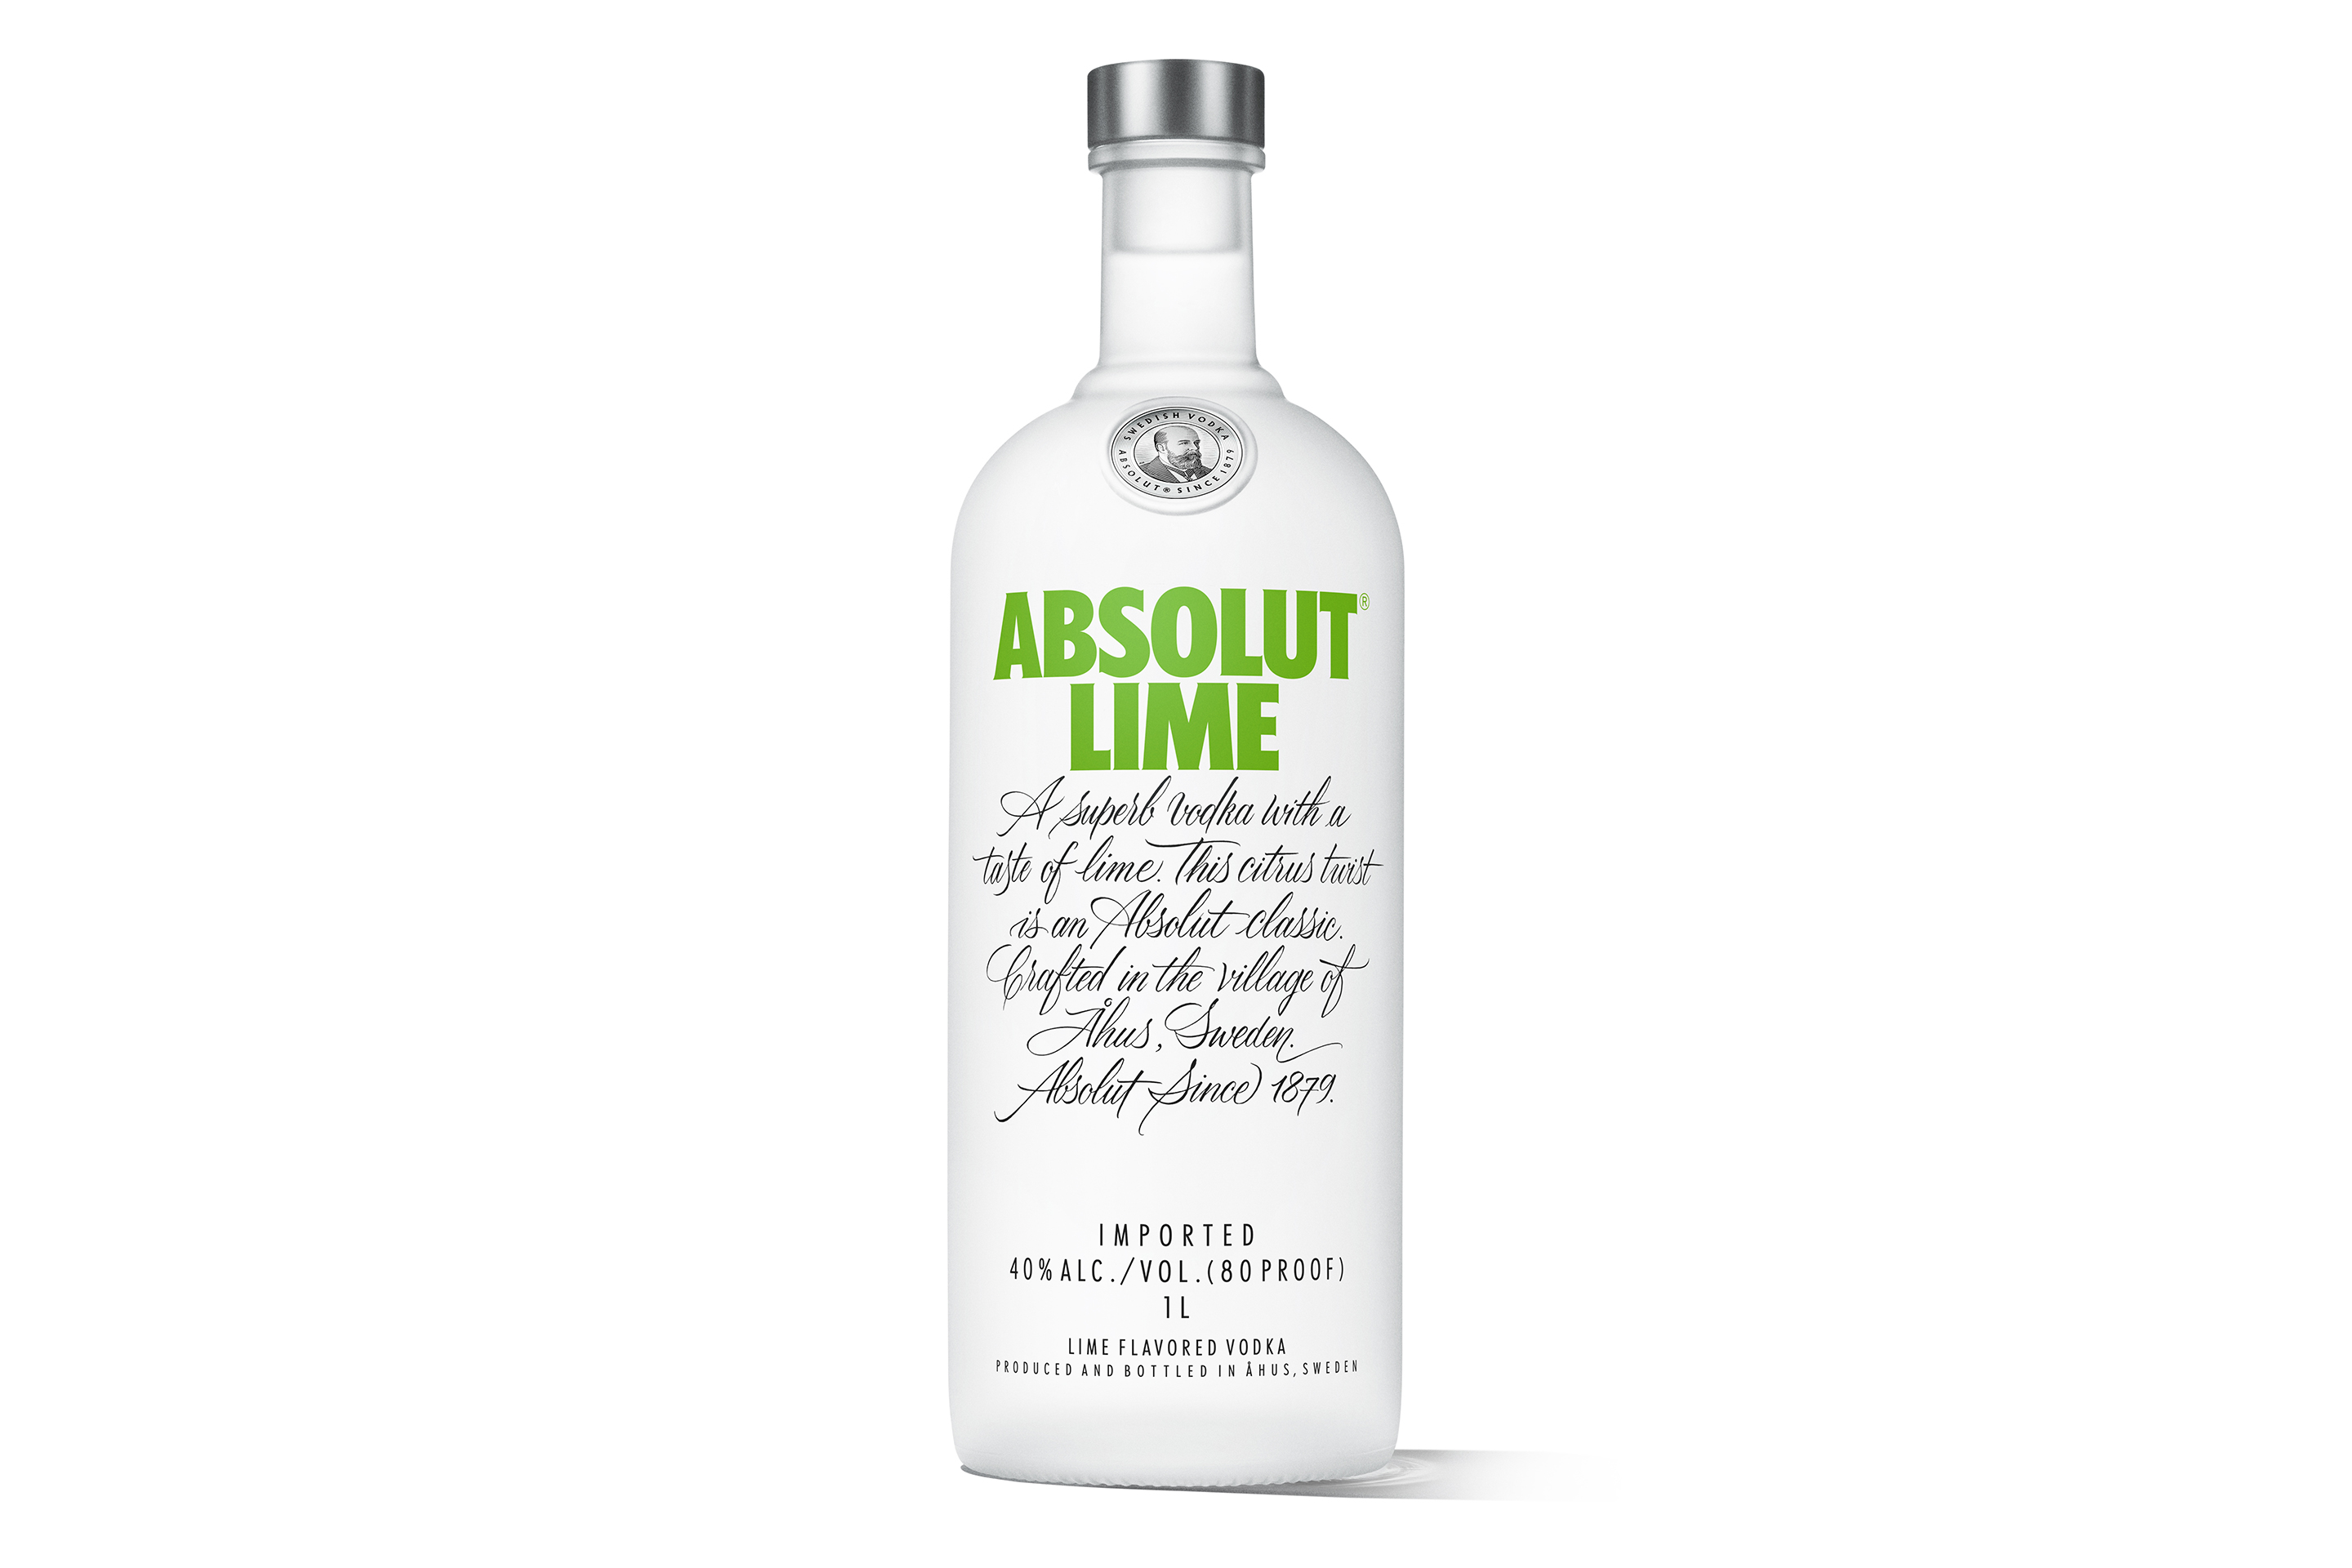 Pernod Ricard is starting a national roll out of Absolut Lime, the vodka brand's first new flavor since 2013.